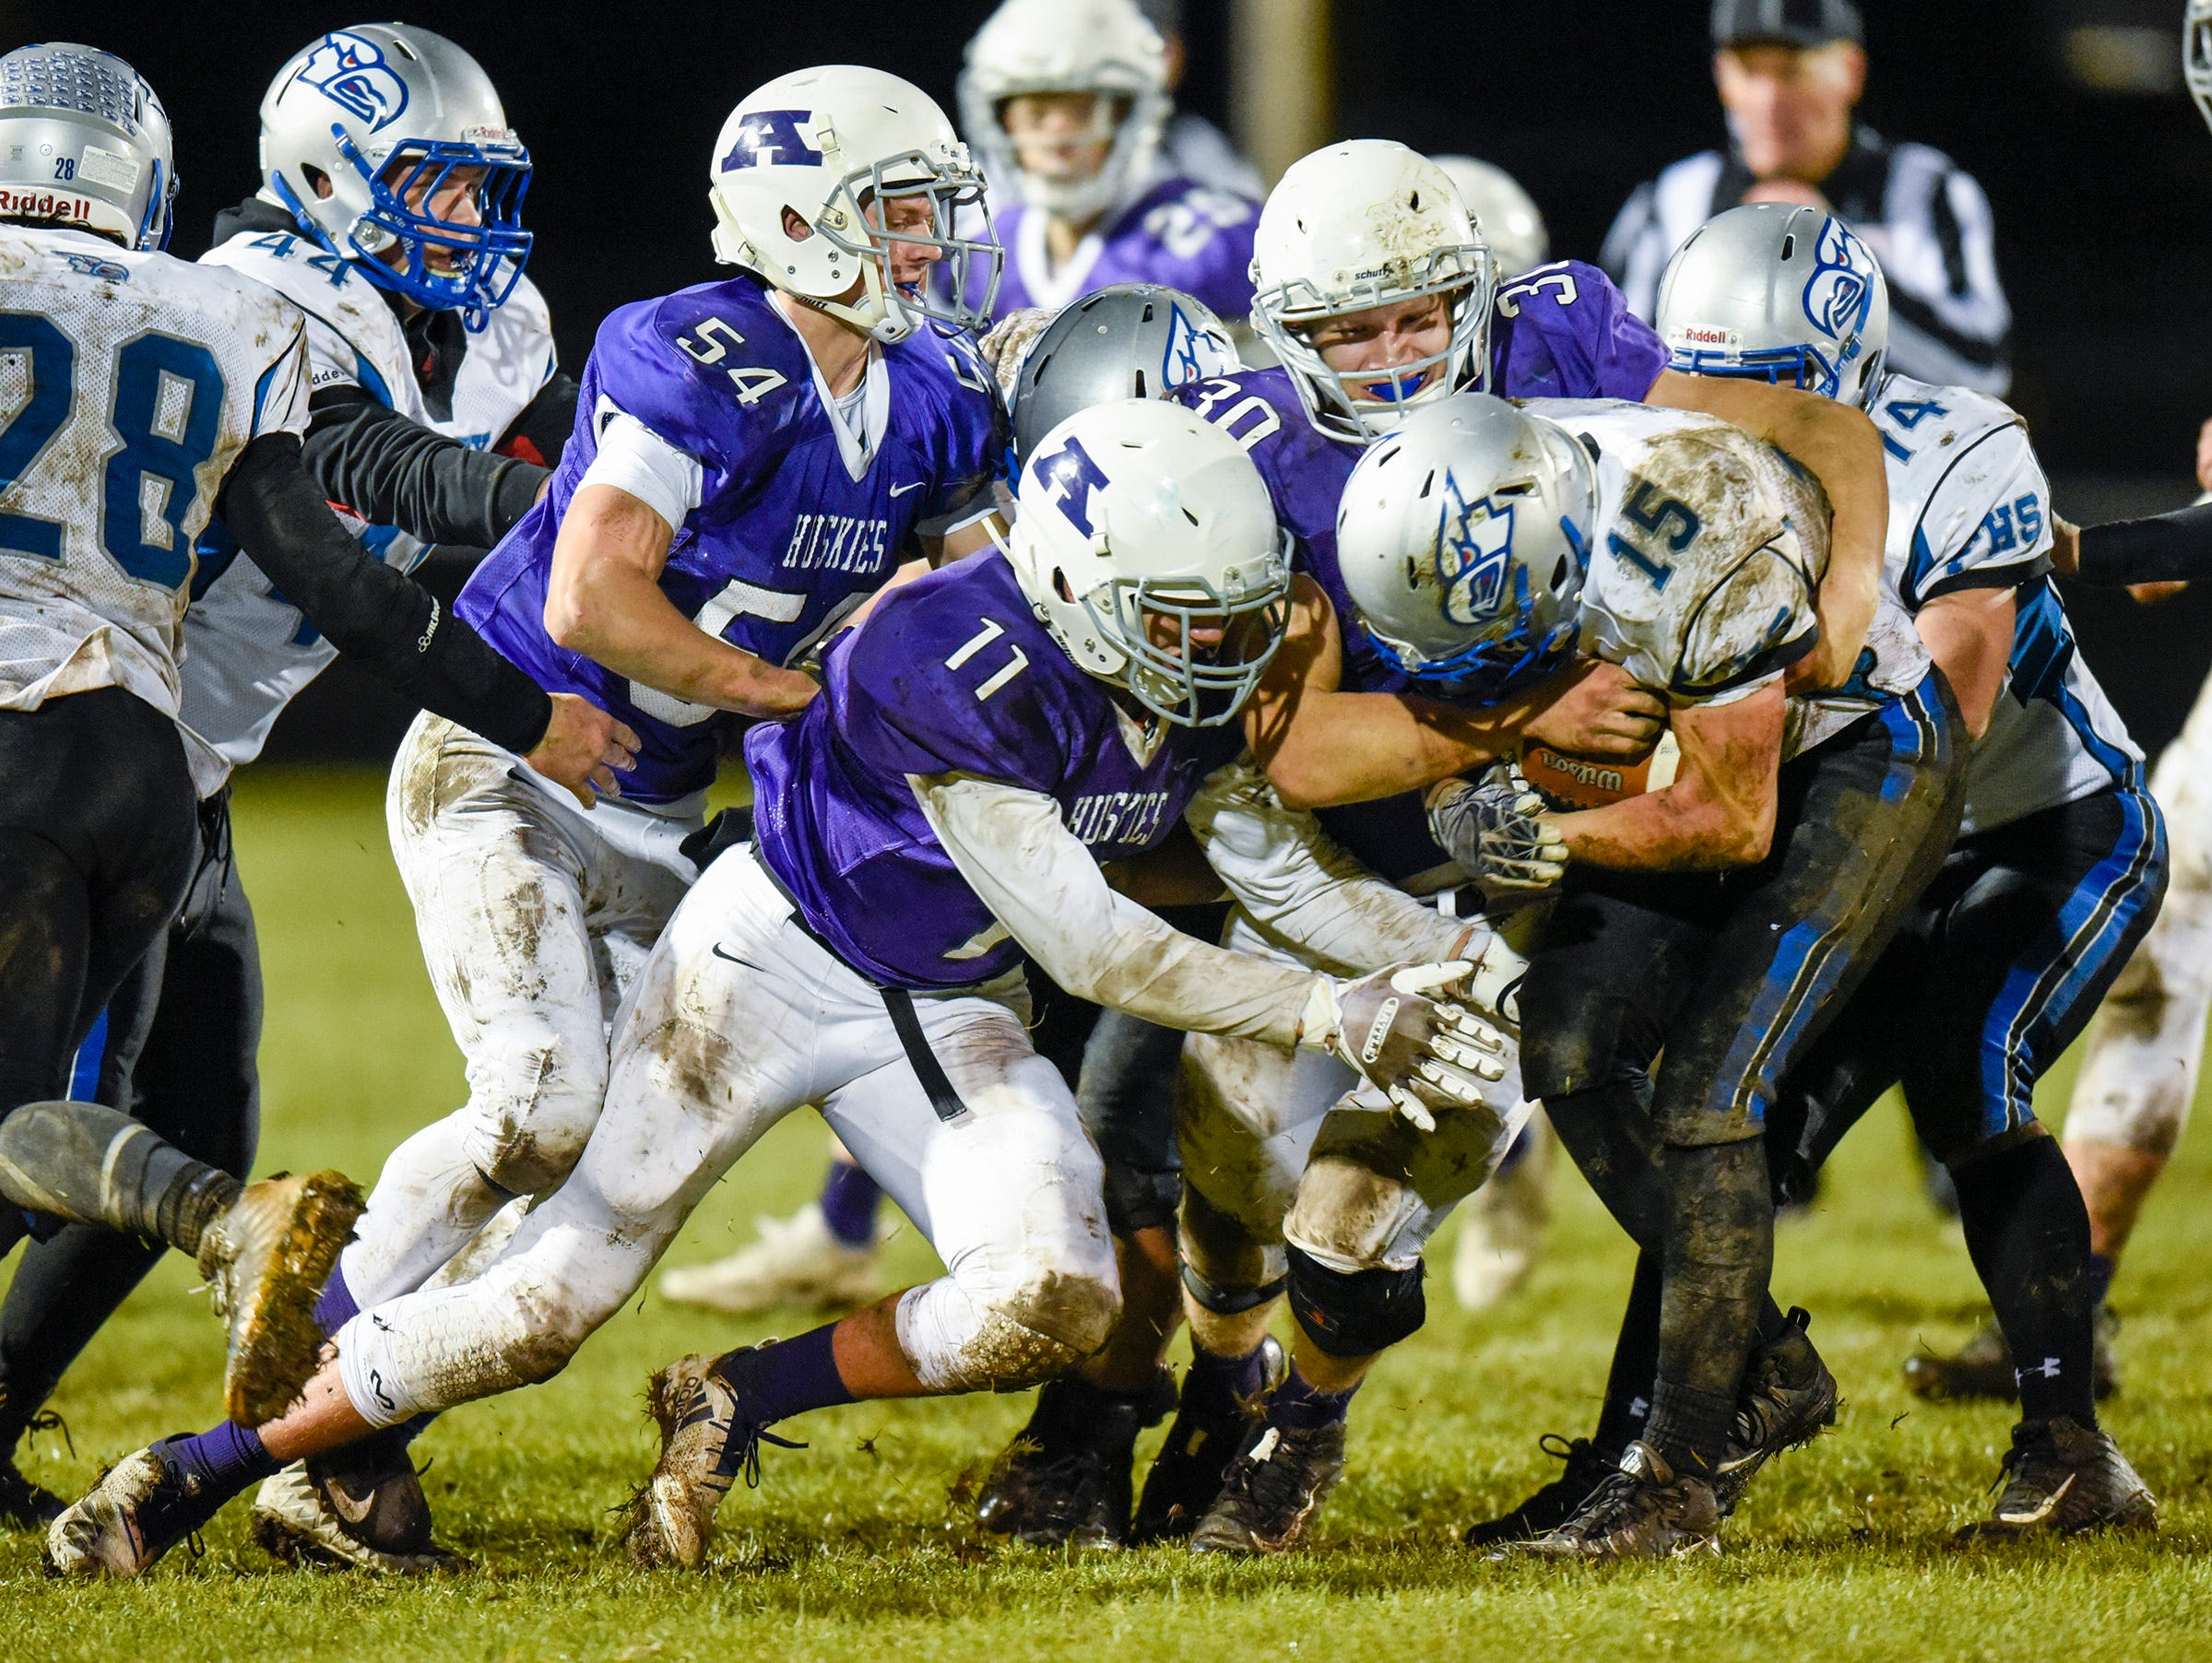 Albany's defense stops Foley's Mark Dierkes during the first half Friday, Oct. 12, in Albany.